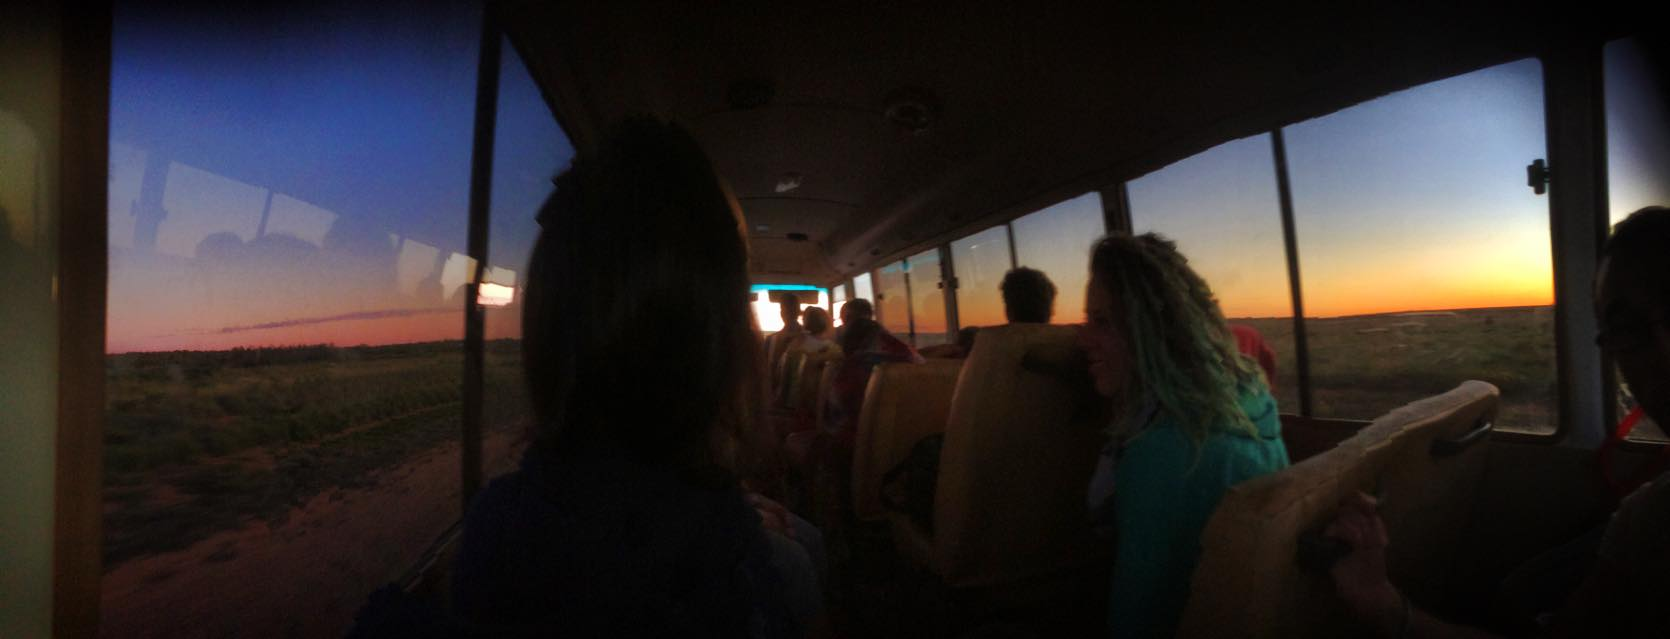 sunset-inside-the-magic-bus-west-aus-wa